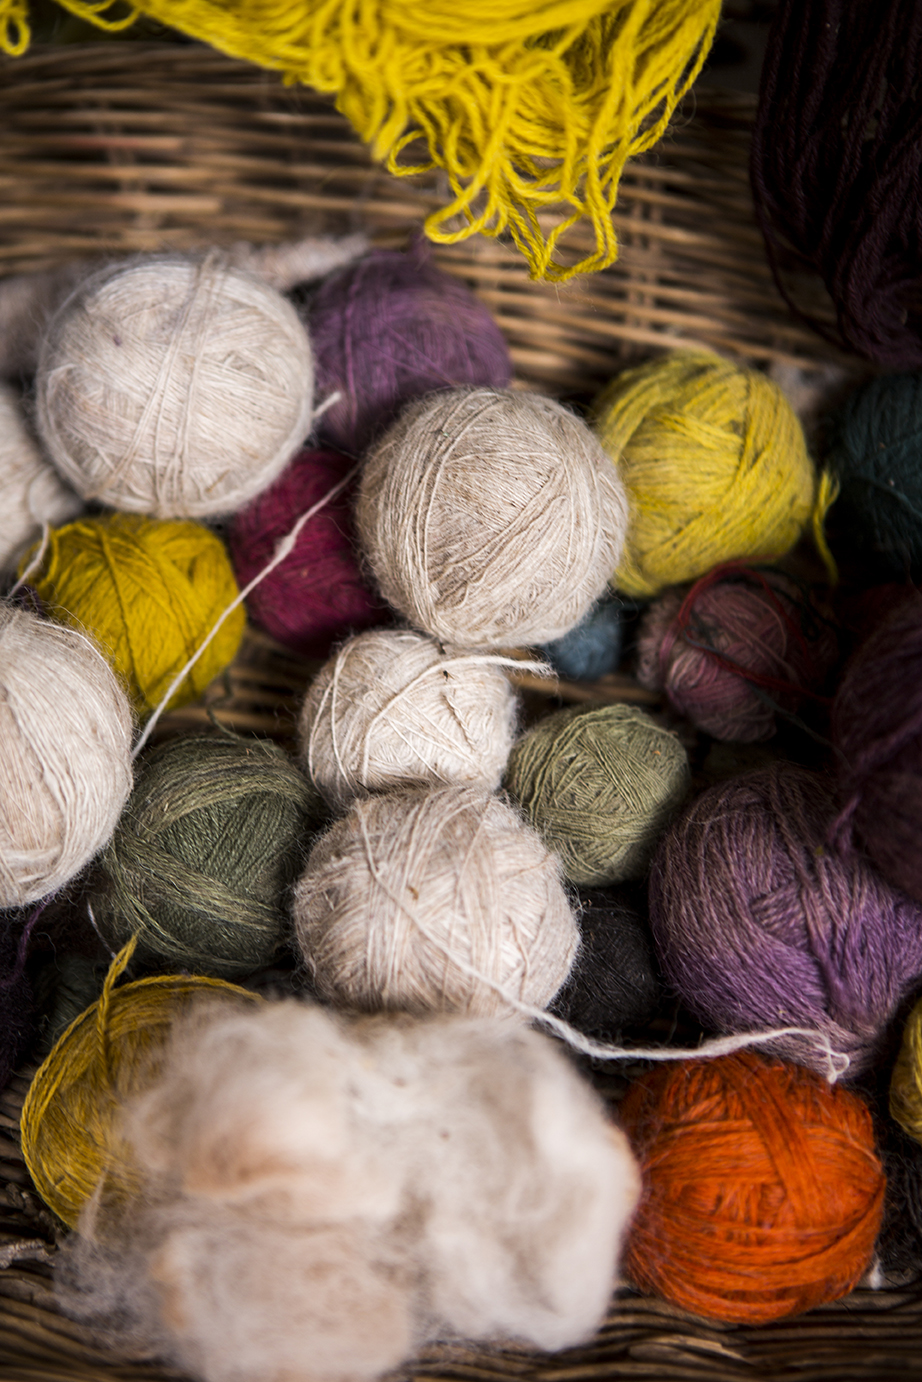 Awana Kancha alpaca farm - threads_12.jpg